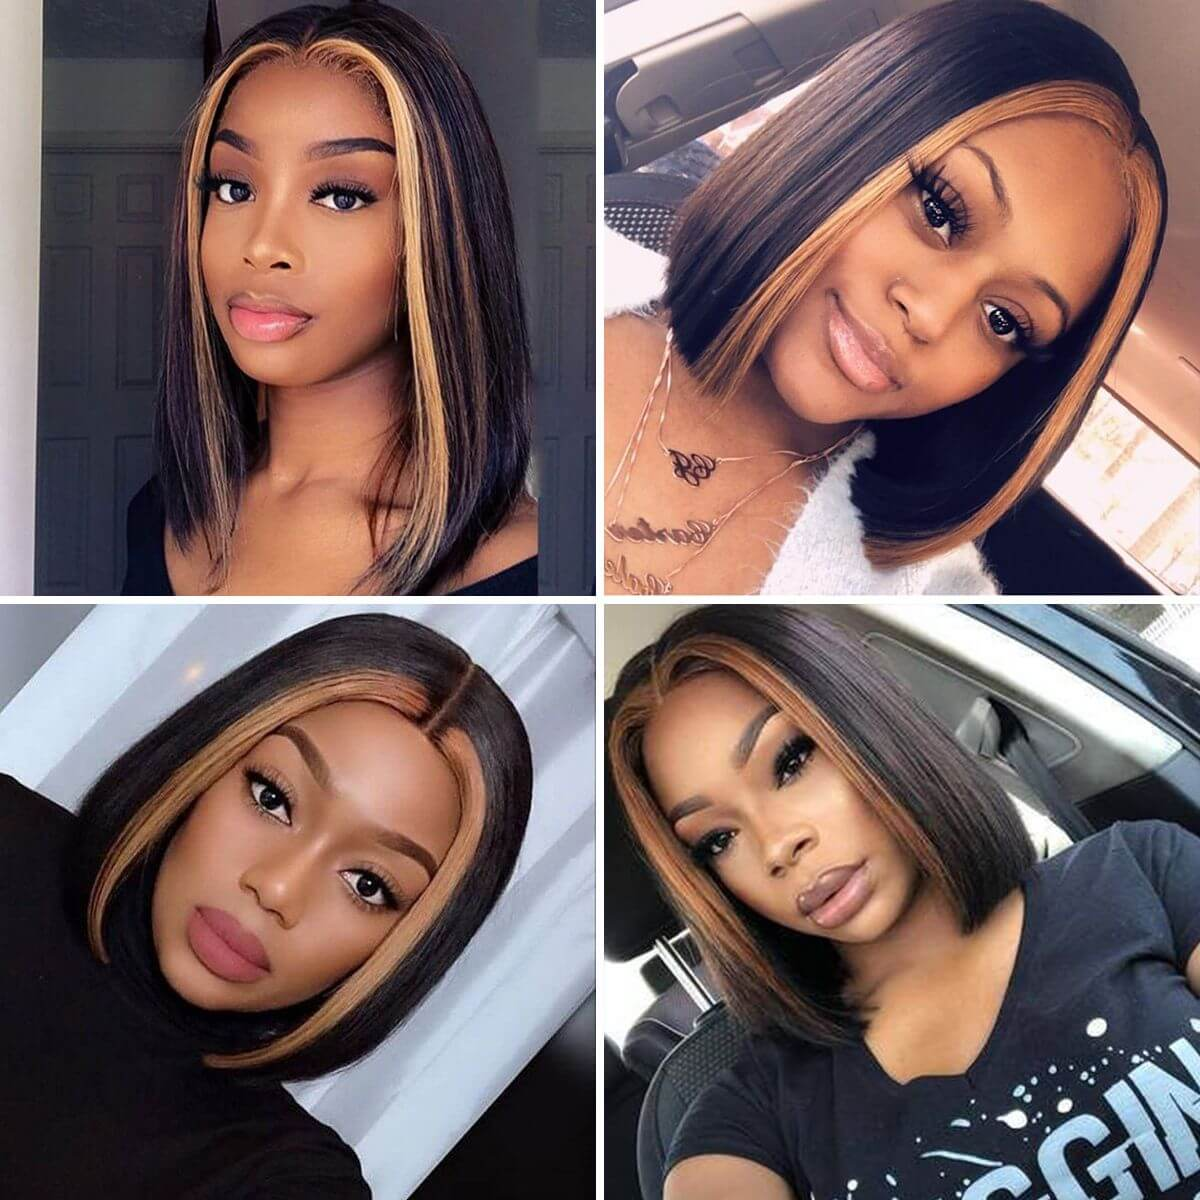 bob highlight wigs,short bob highlight wigs,short highlight bob wigs,highlight lace front wigs,highlight colort bob wig,ombre highlight bob wig